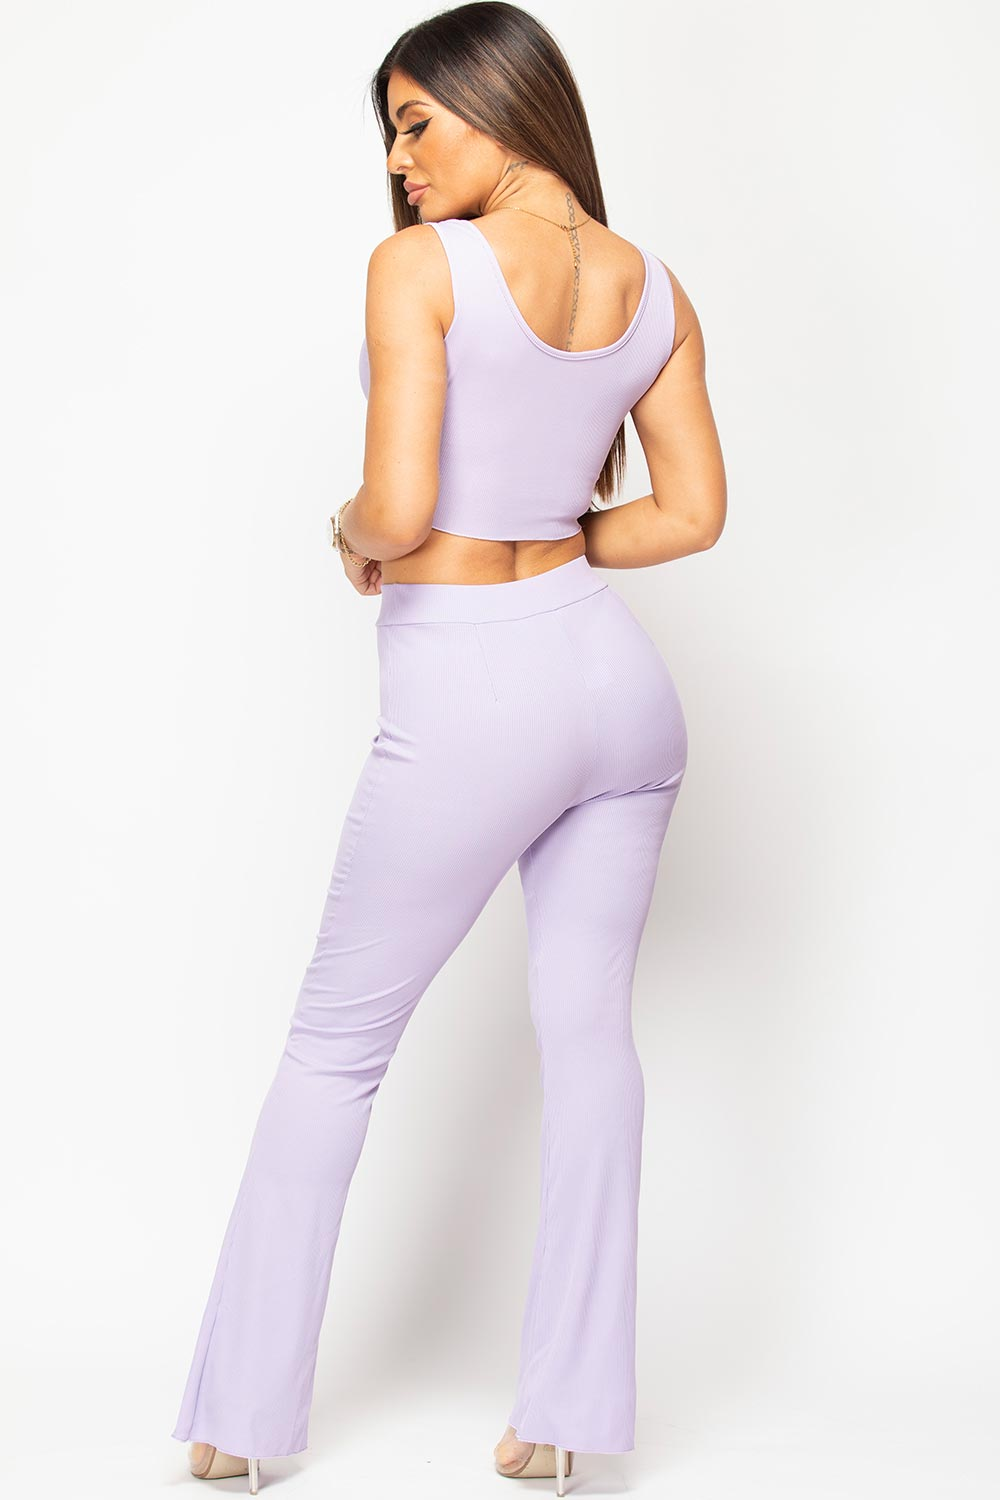 purple wide leg ribbed trousers and crop top set